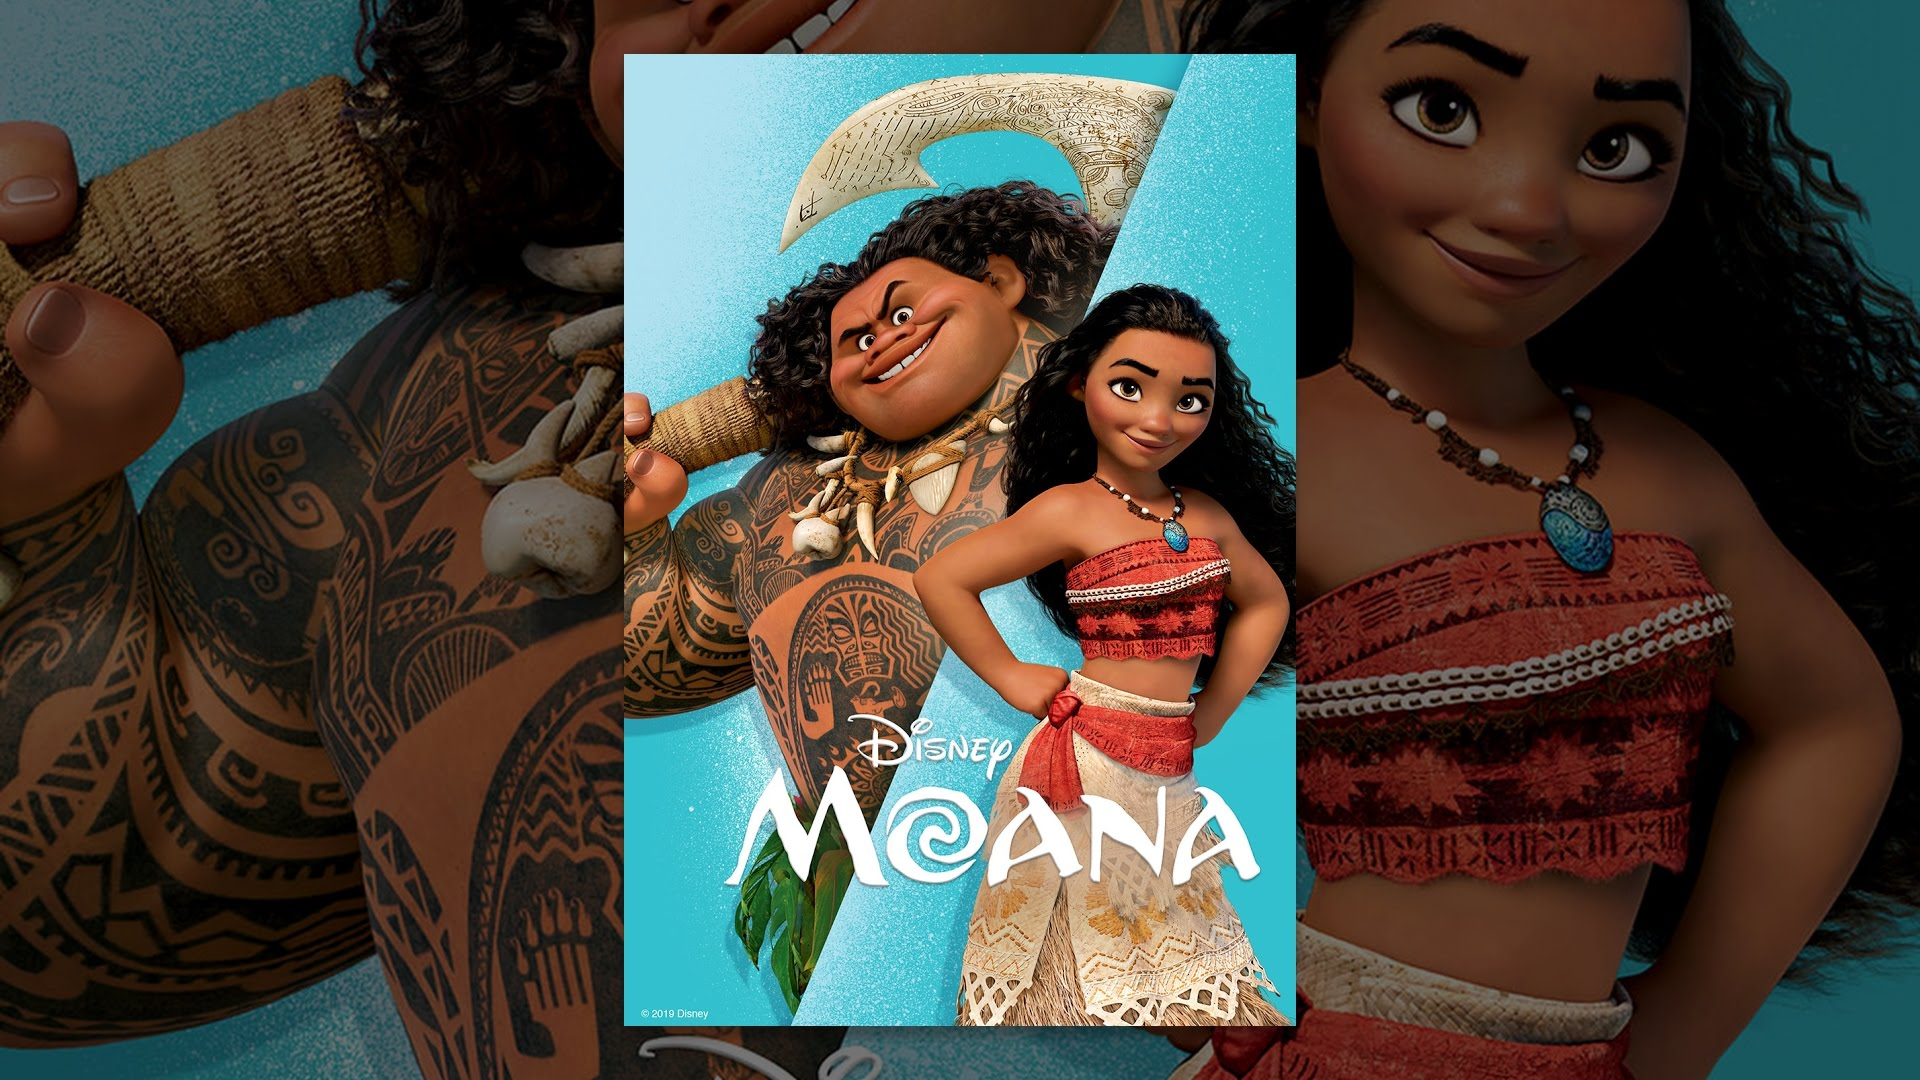 It's just a photo of Impertinent Picture of Moana